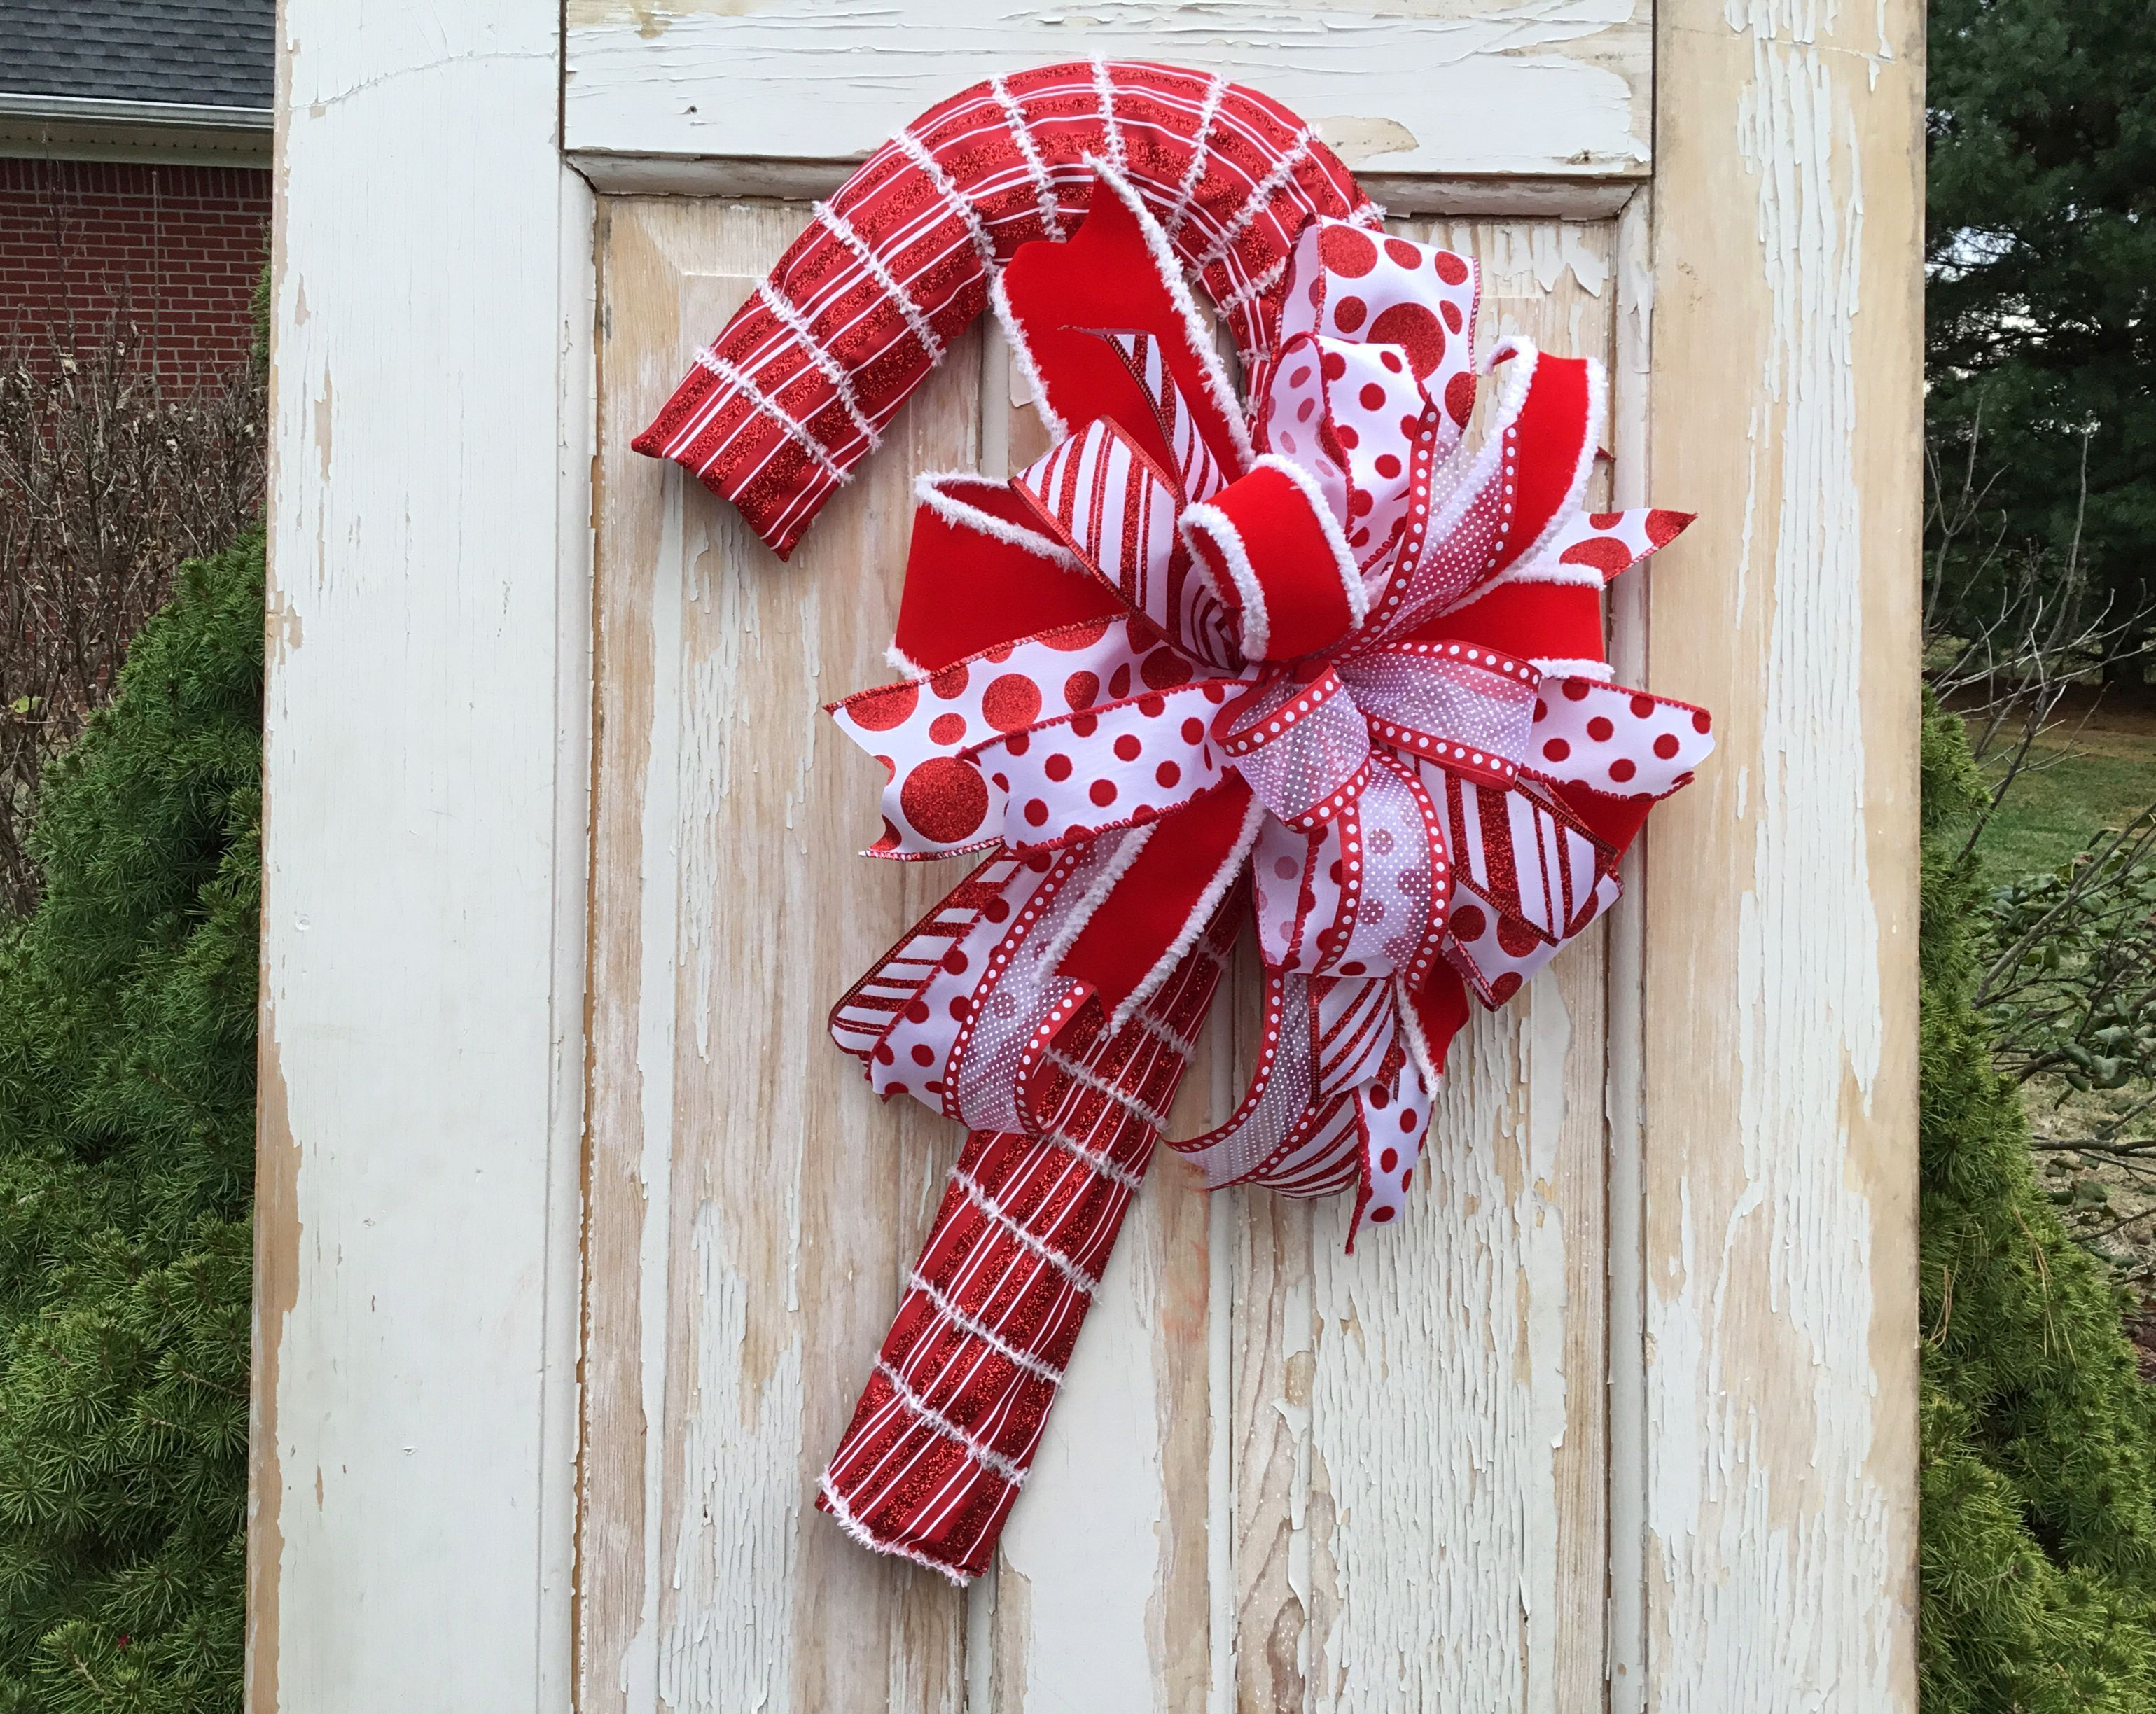 Candy Cane For Door~Red White Candy Cane Wreath~Christmas Candy Cane Door #candycanewreath Candy Cane For Door~Red White Candy Cane Wreath~Christmas Candy Cane Door~Candy Cane Wreath~Candy Cane Decoration~Candy Cane Door Hanger #candycanewreath Candy Cane For Door~Red White Candy Cane Wreath~Christmas Candy Cane Door #candycanewreath Candy Cane For Door~Red White Candy Cane Wreath~Christmas Candy Cane Door~Candy Cane Wreath~Candy Cane Decoration~Candy Cane Door Hanger #candycanewreath Candy Cane #candycanewreath